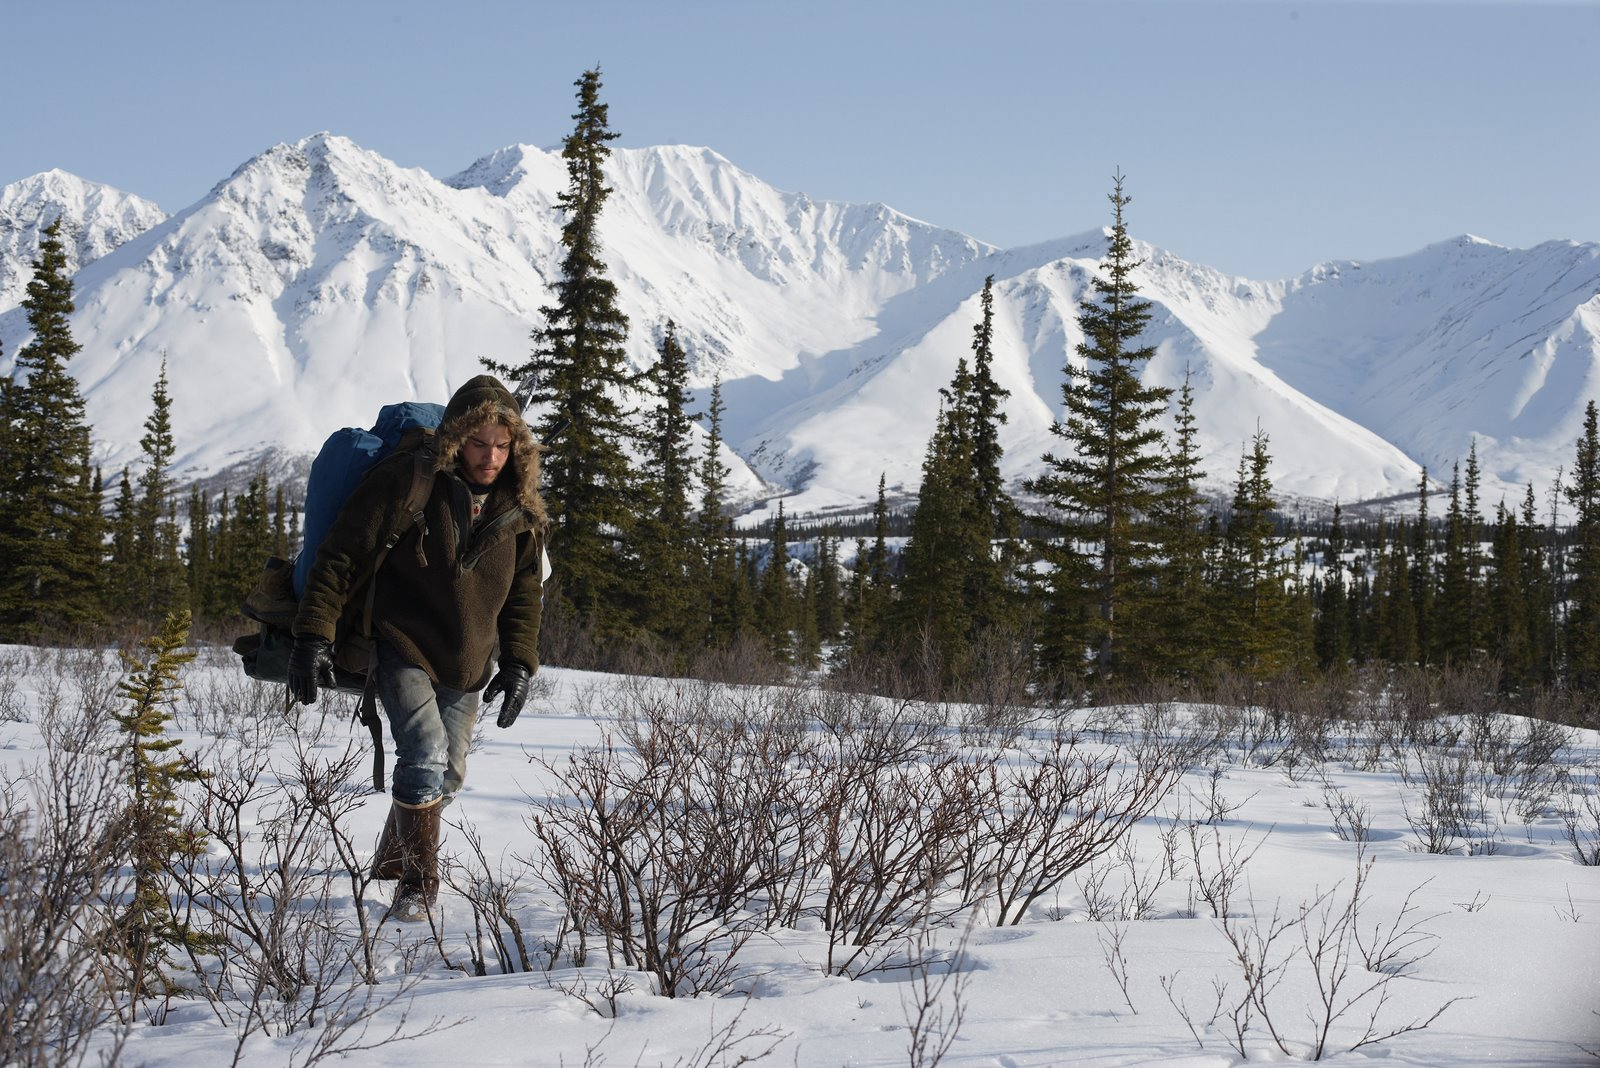 MOVIE MANIA PART 3: FOR EXISTENCE – INTO THE WILD